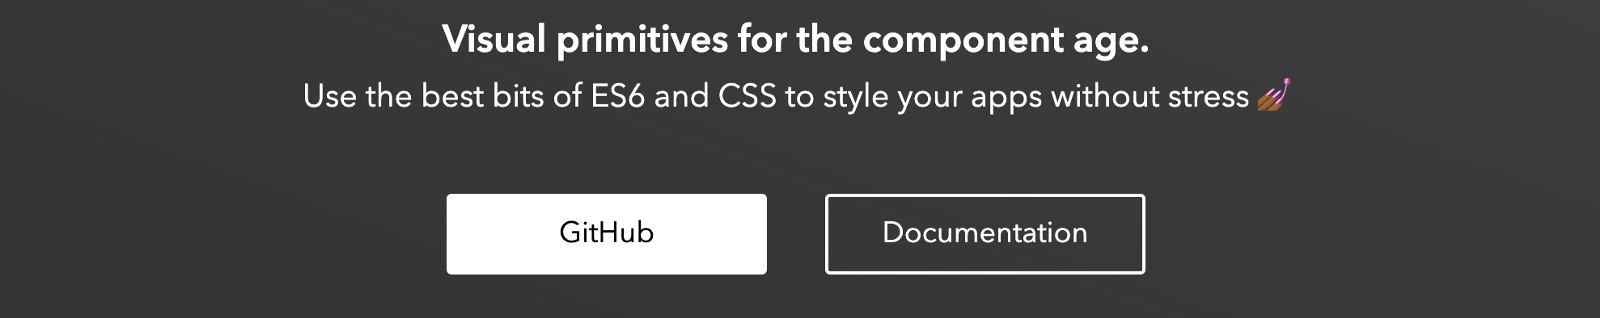 Visual primitives for the component age. Use the best bits of ES6 and CSS to style your app without stres. (nail painting emoji) Buttons: GitHub and Documentation.